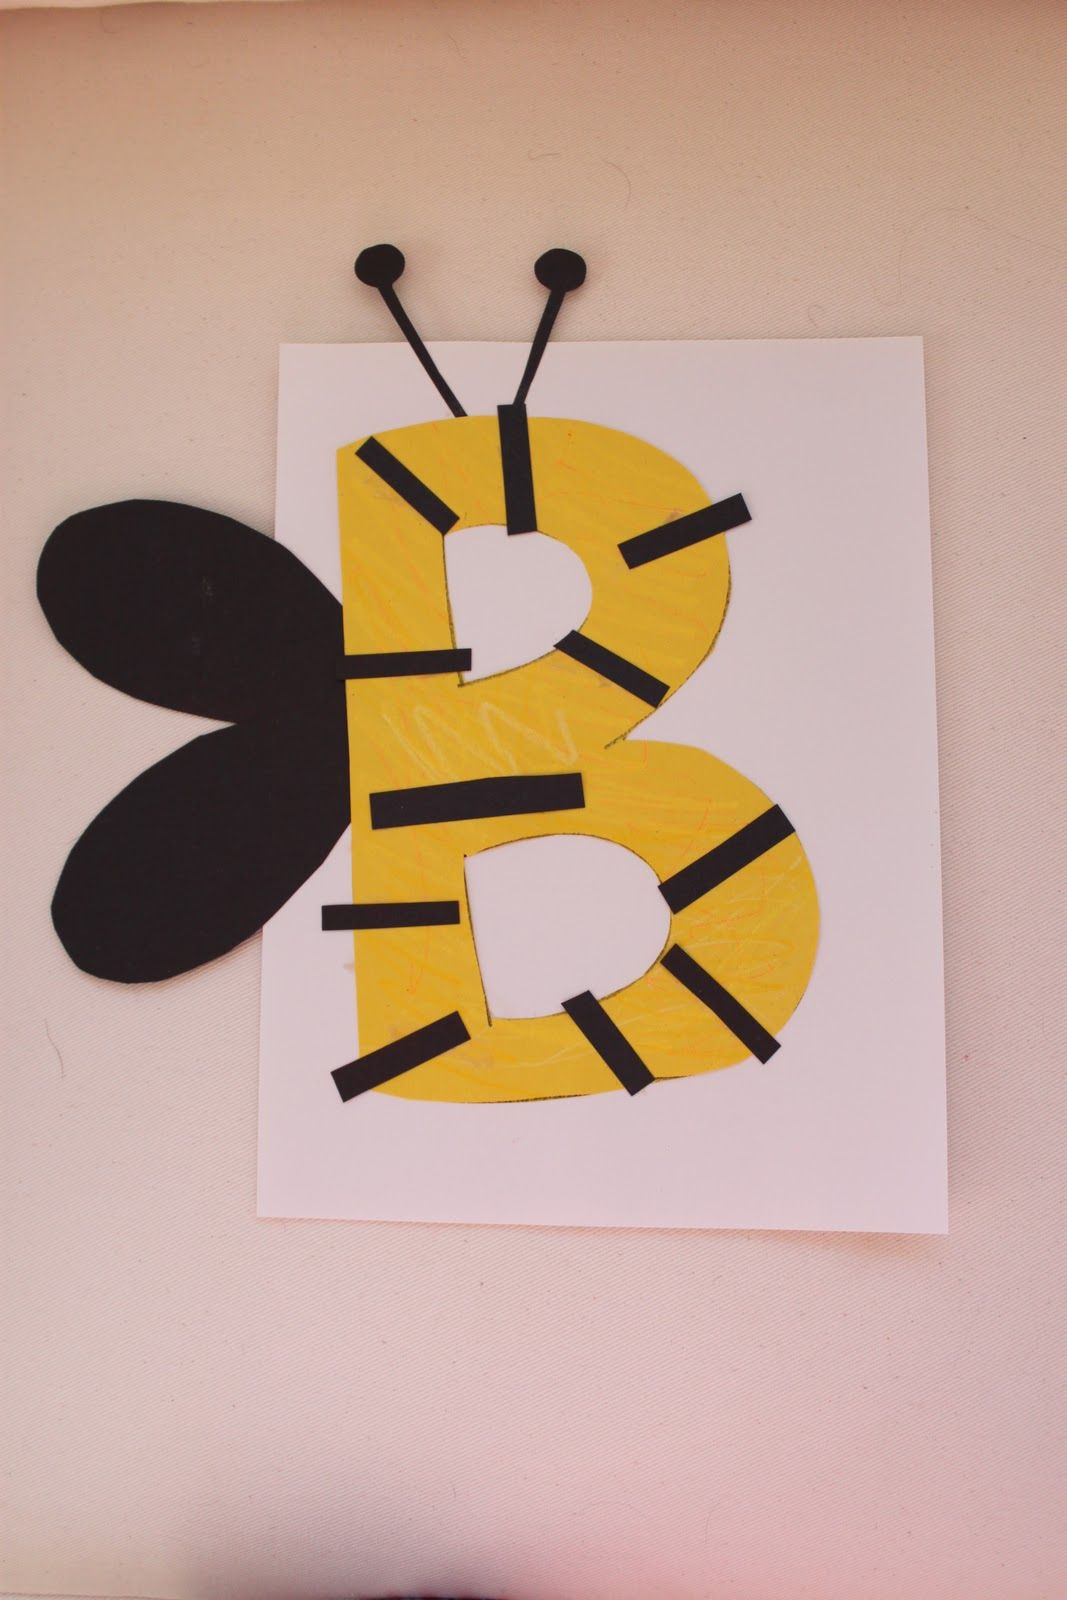 Pin by Misty Dayton on Preschool Crafts | Letter b crafts